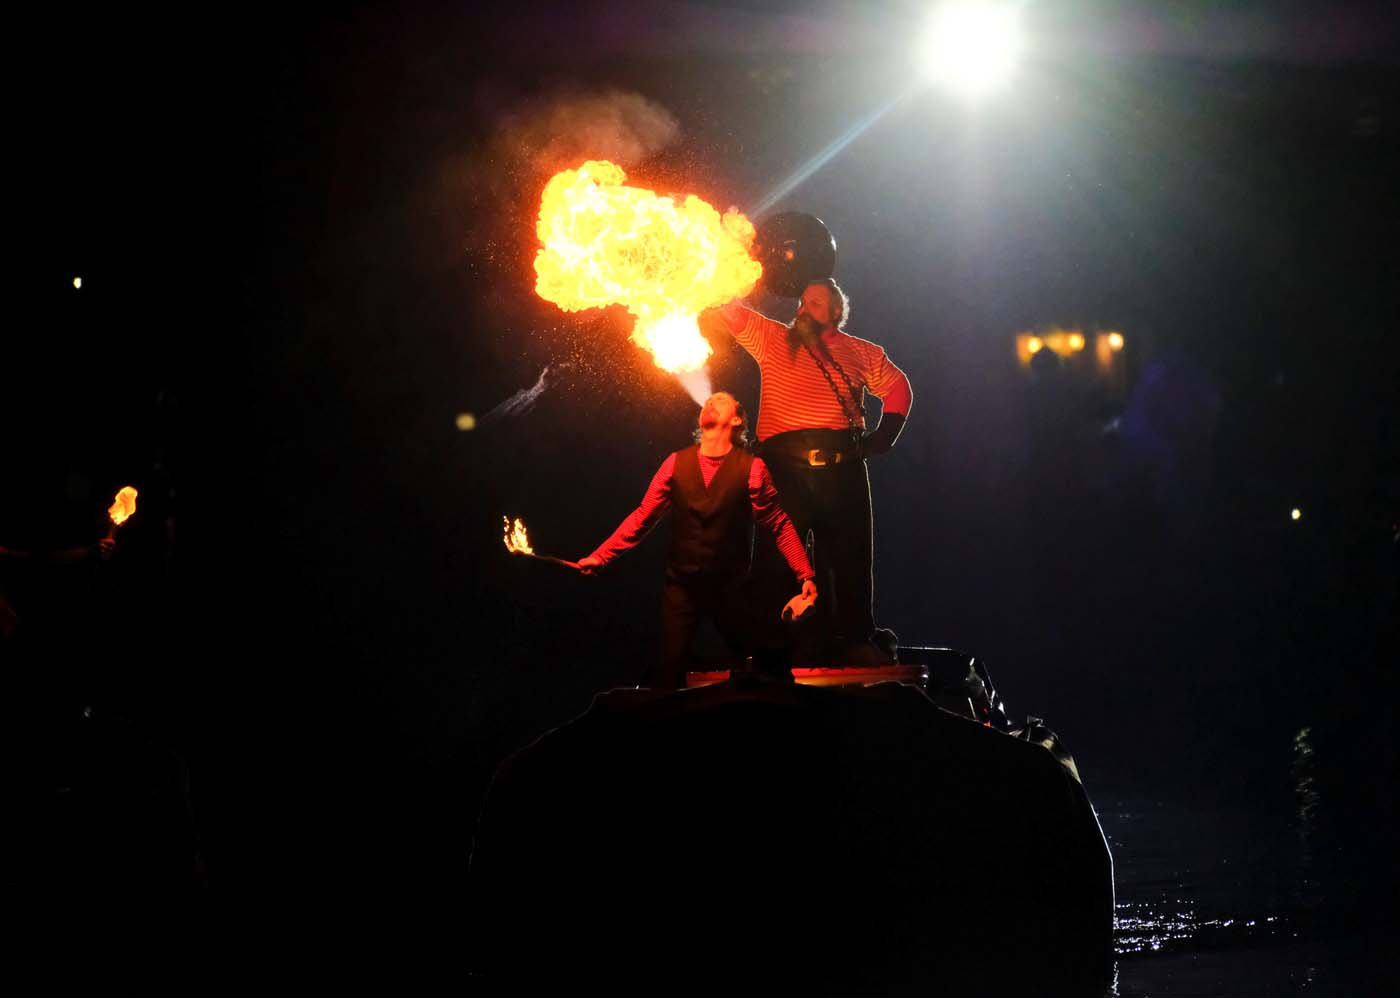 Fire-eaters perform during the opening ceremony of the Carnival in Venice, Italy January 27, 2018. REUTERS/Manuel Silvestri